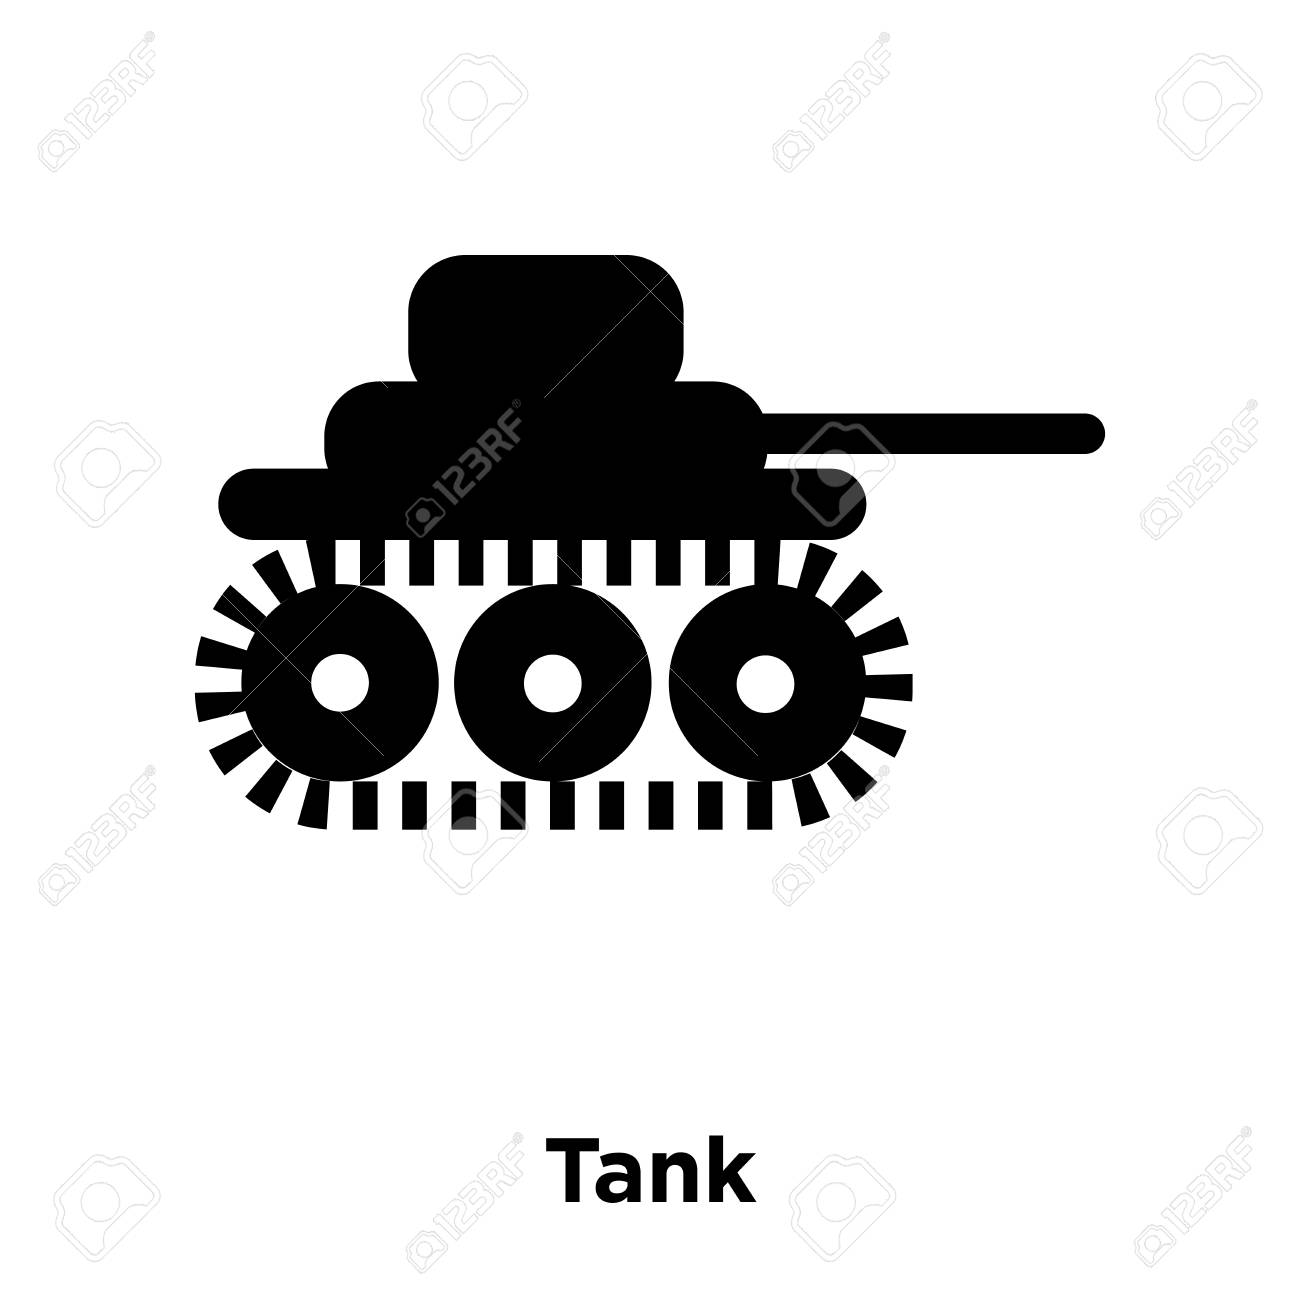 tank icon vector isolated on white background logo concept of royalty free cliparts vectors and stock illustration image 107867778 tank icon vector isolated on white background logo concept of